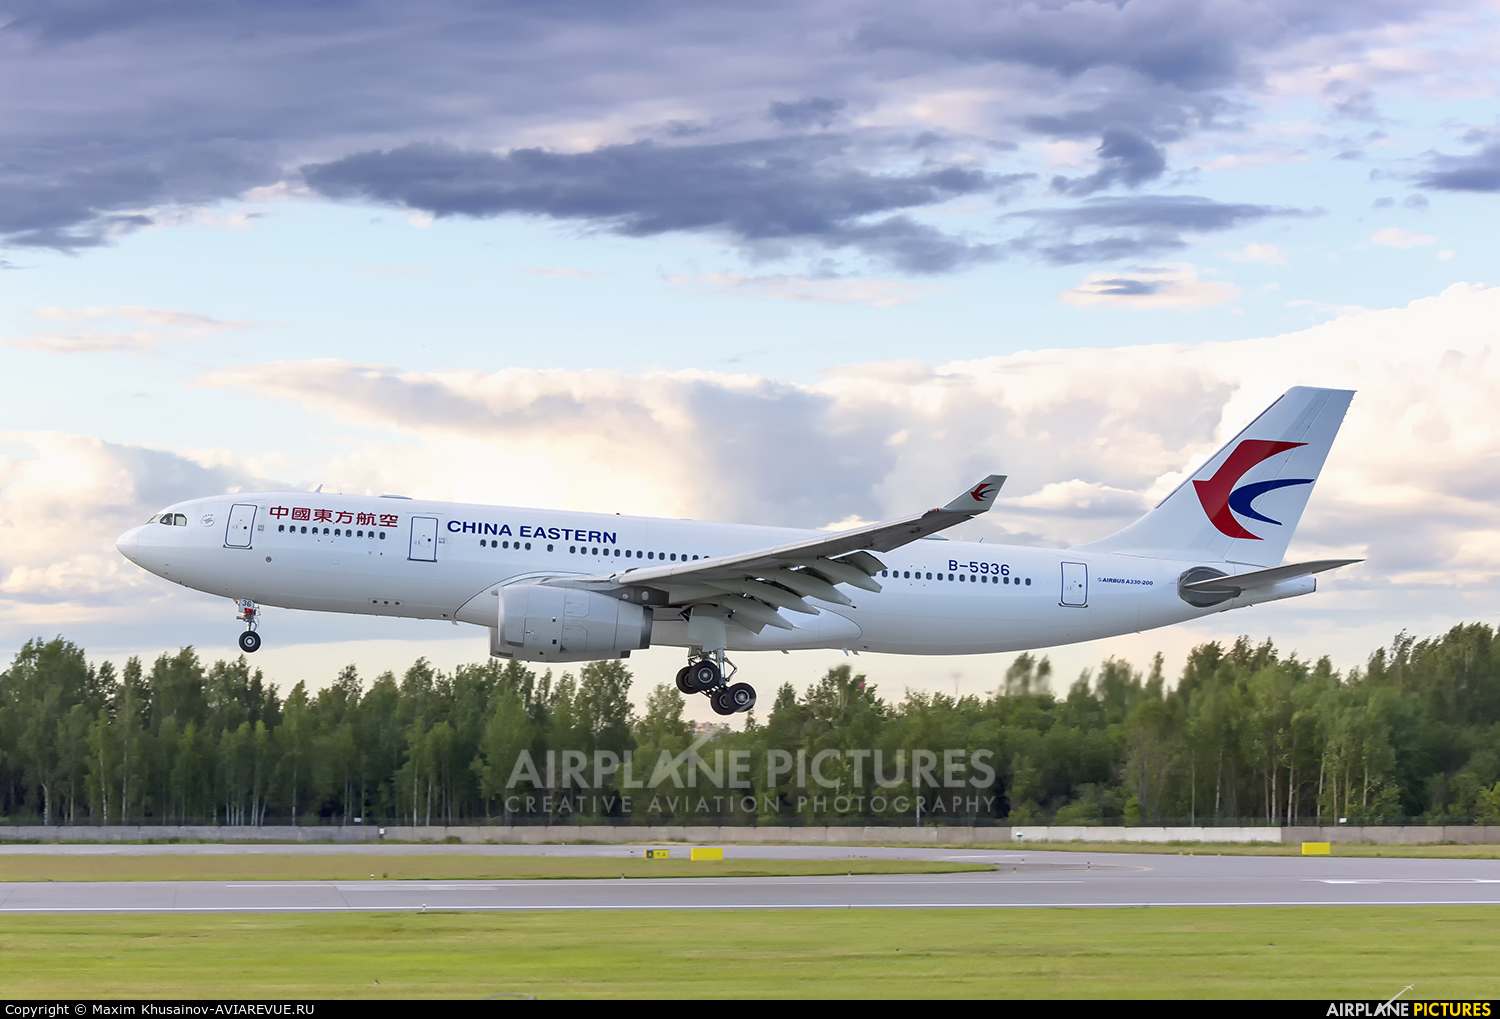 China Eastern Airlines B-5936 aircraft at St. Petersburg - Pulkovo